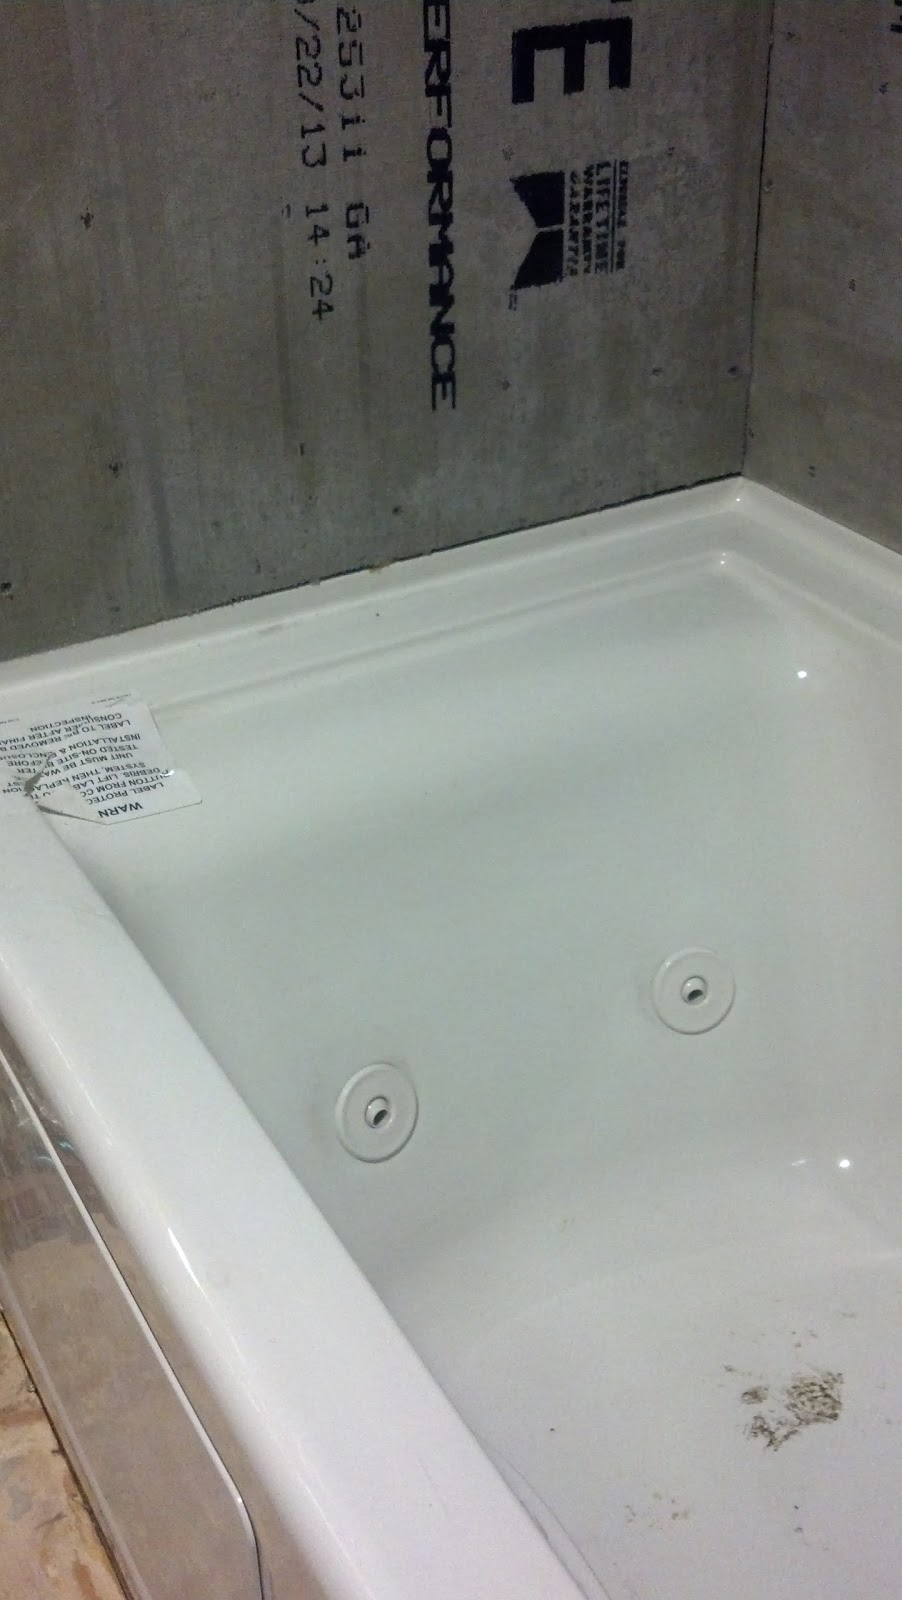 7 days to a new bathroom | Postcards from the Ridge